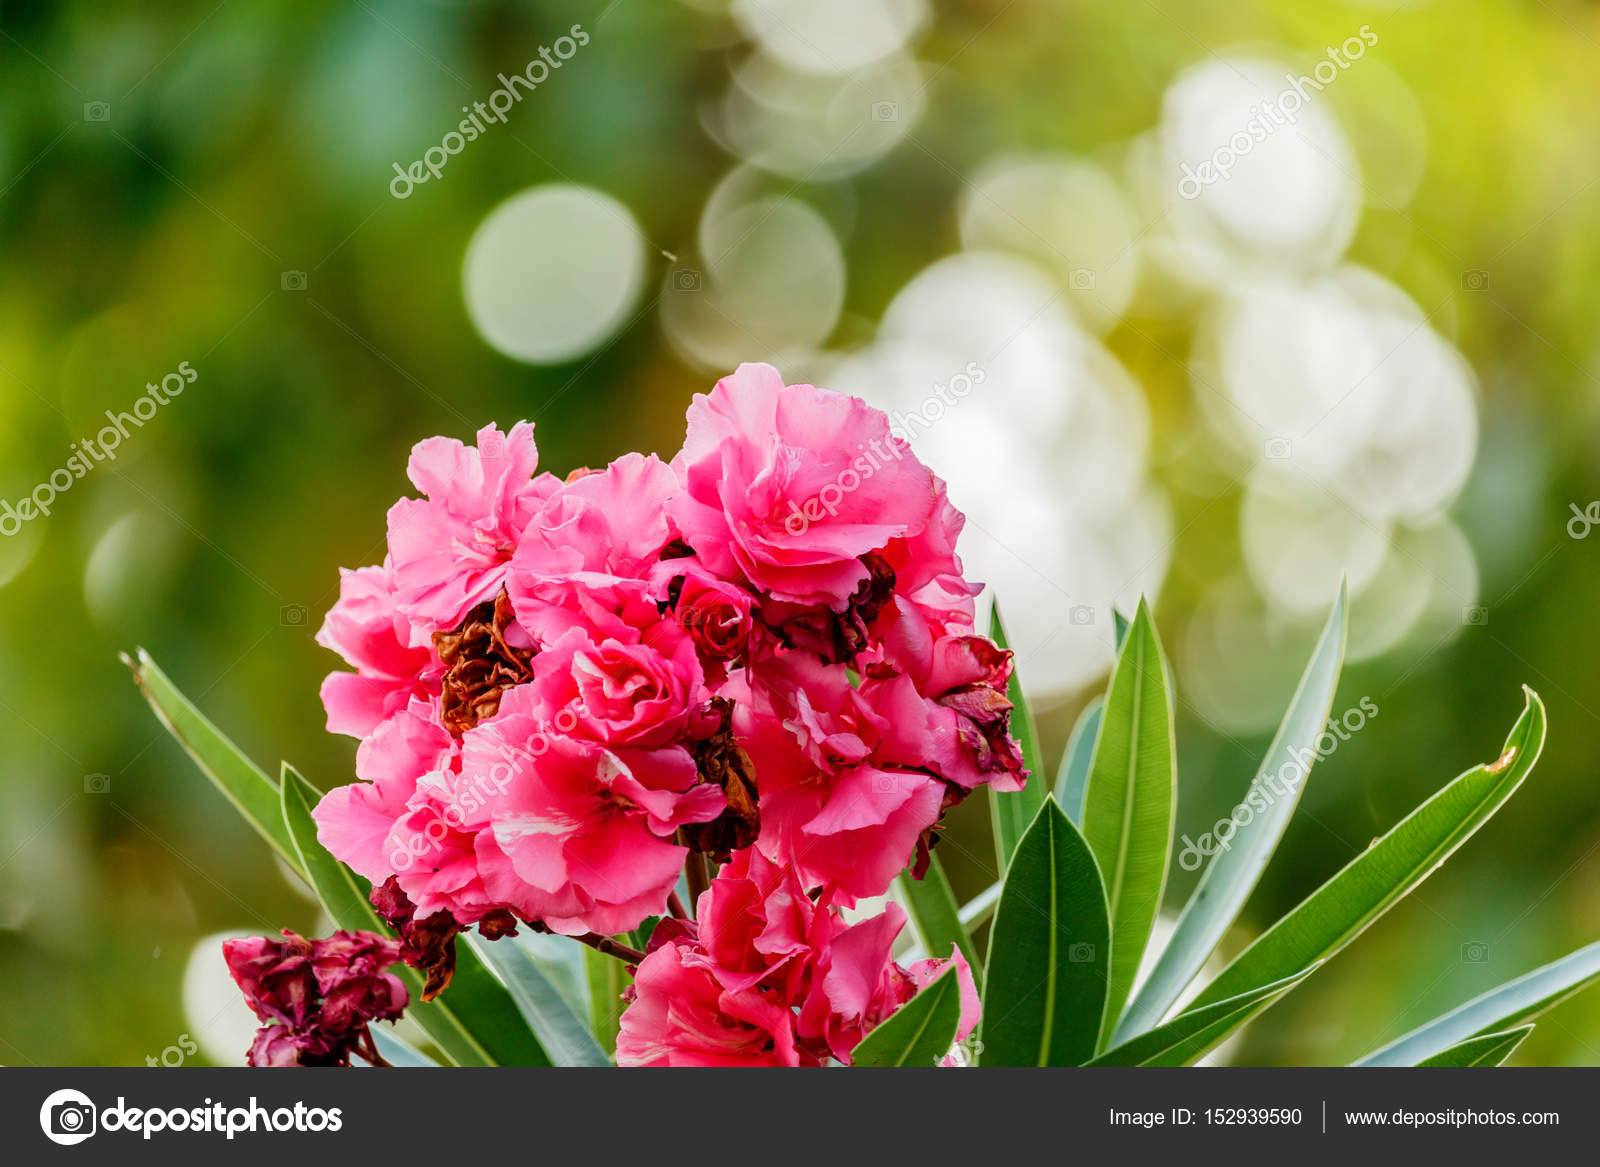 Oleander Shrub Pink Rose Flowers With Leaves Stock Photo Sanpom